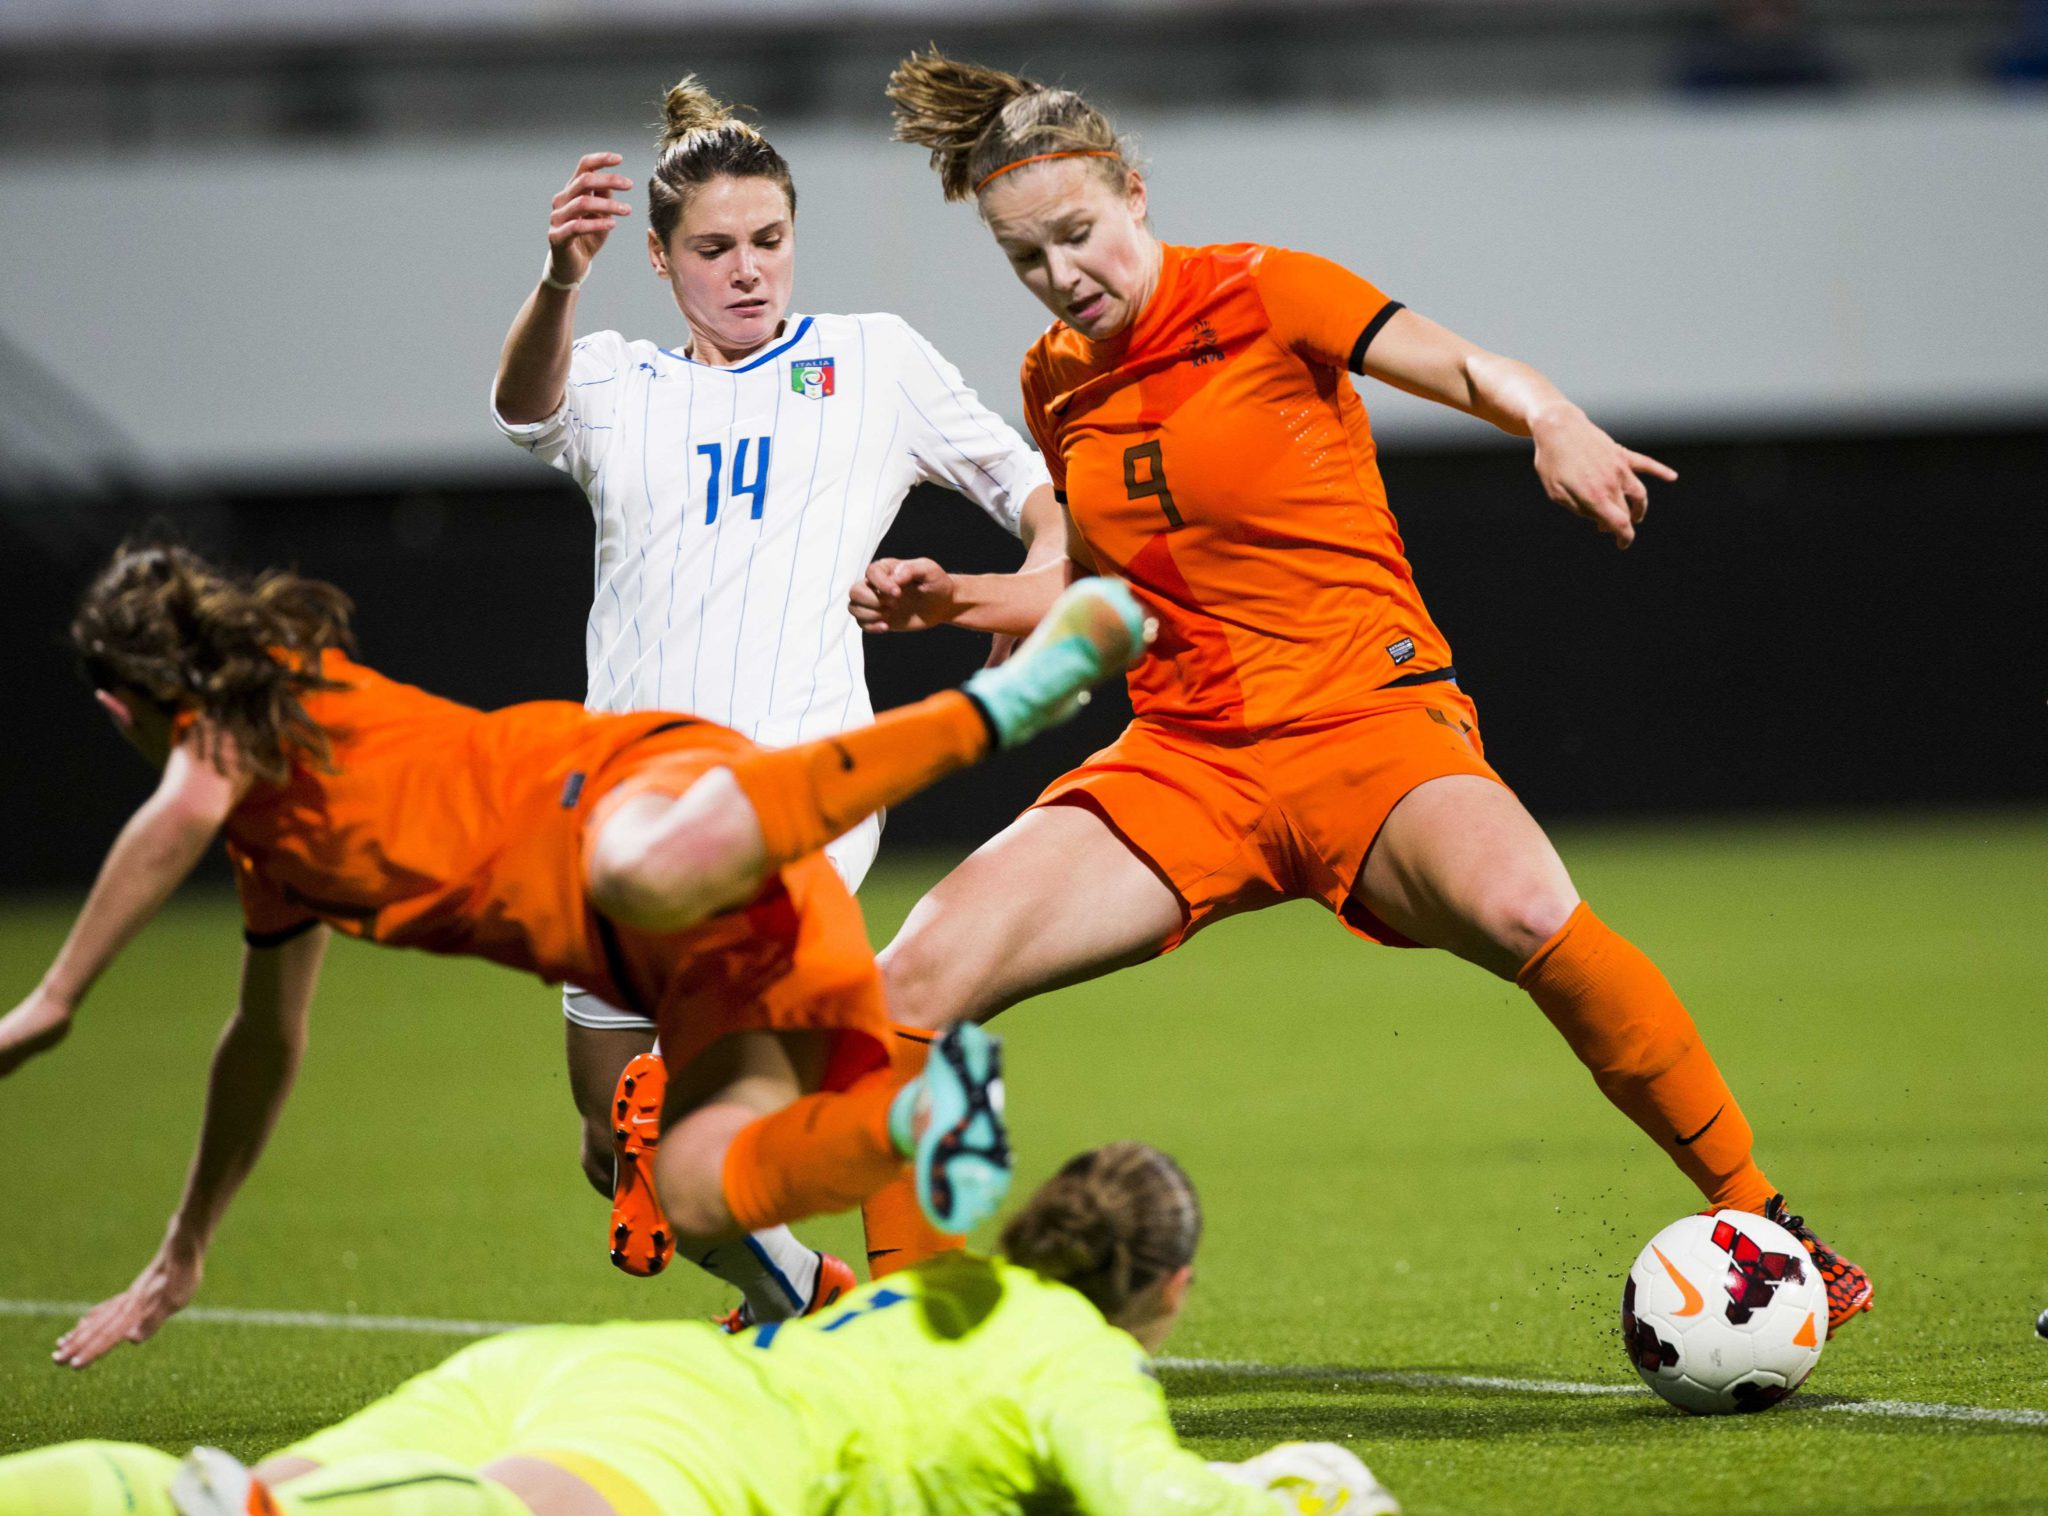 Vivianne Miedema (right) scored twice on Thursday to lift the Dutch into their first-ever Women's World Cup. (Getty Images)